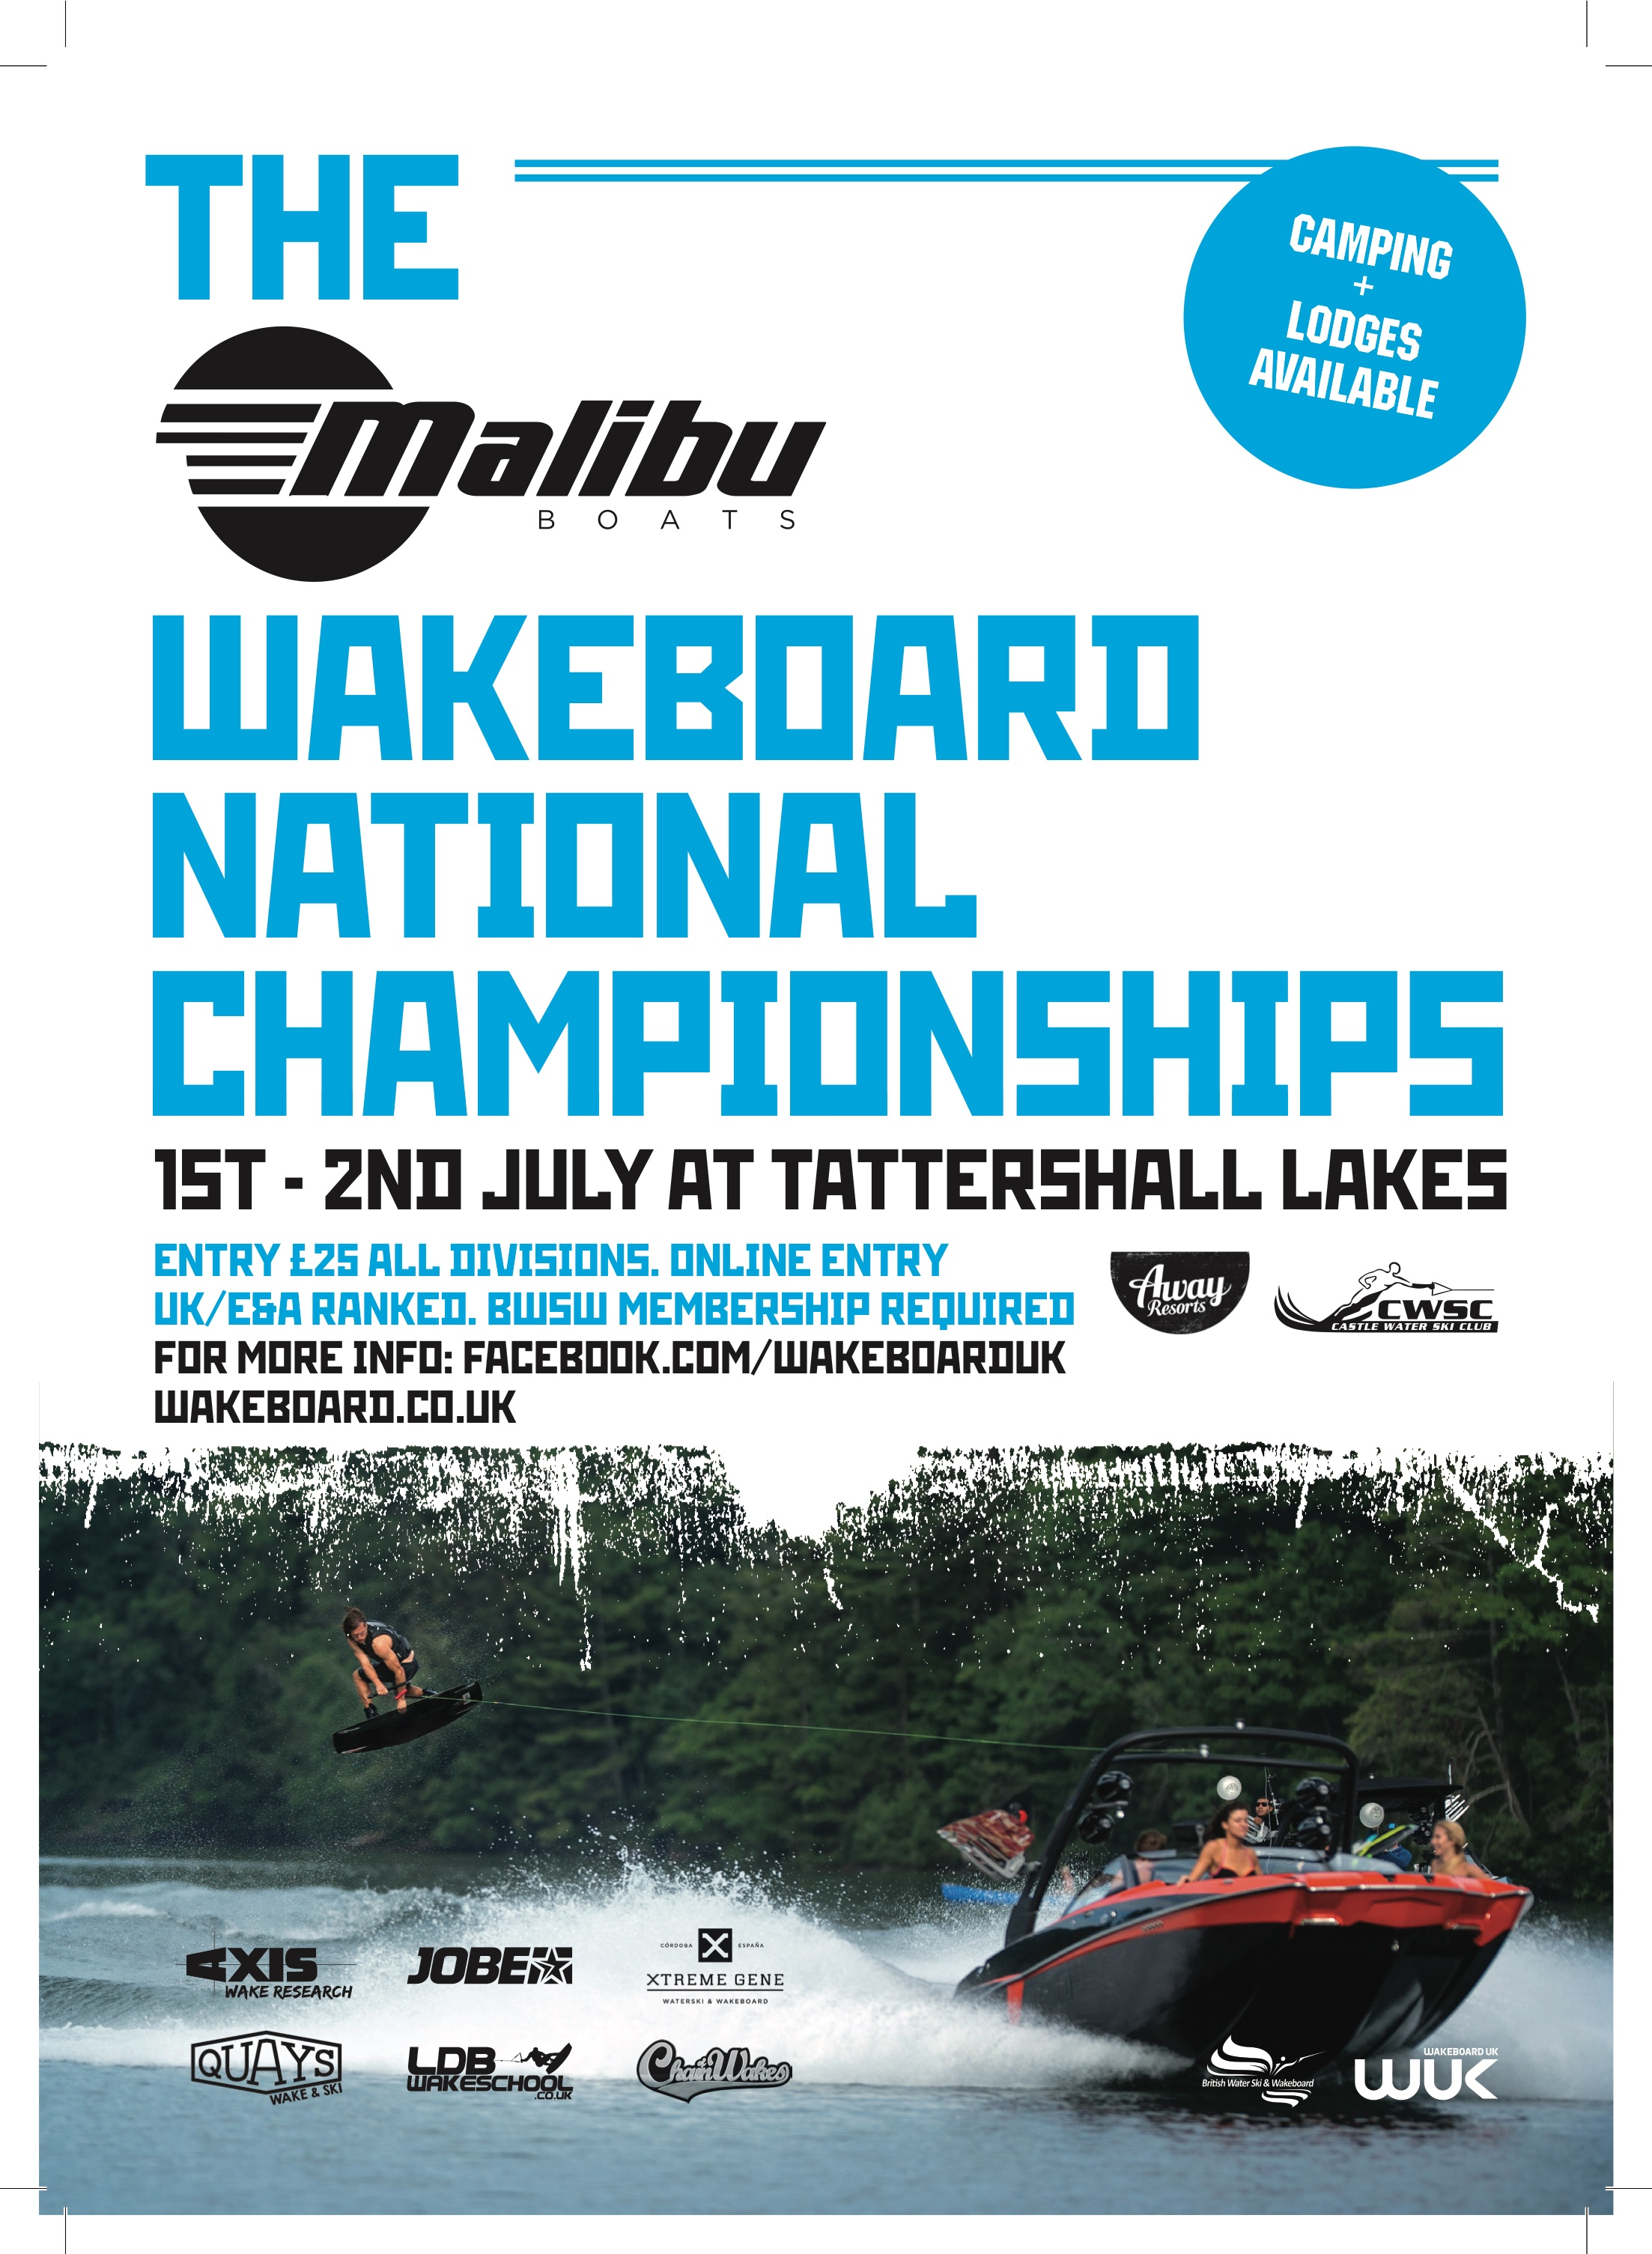 Enter the Malibu Boats Wakeboard National Championships 2017